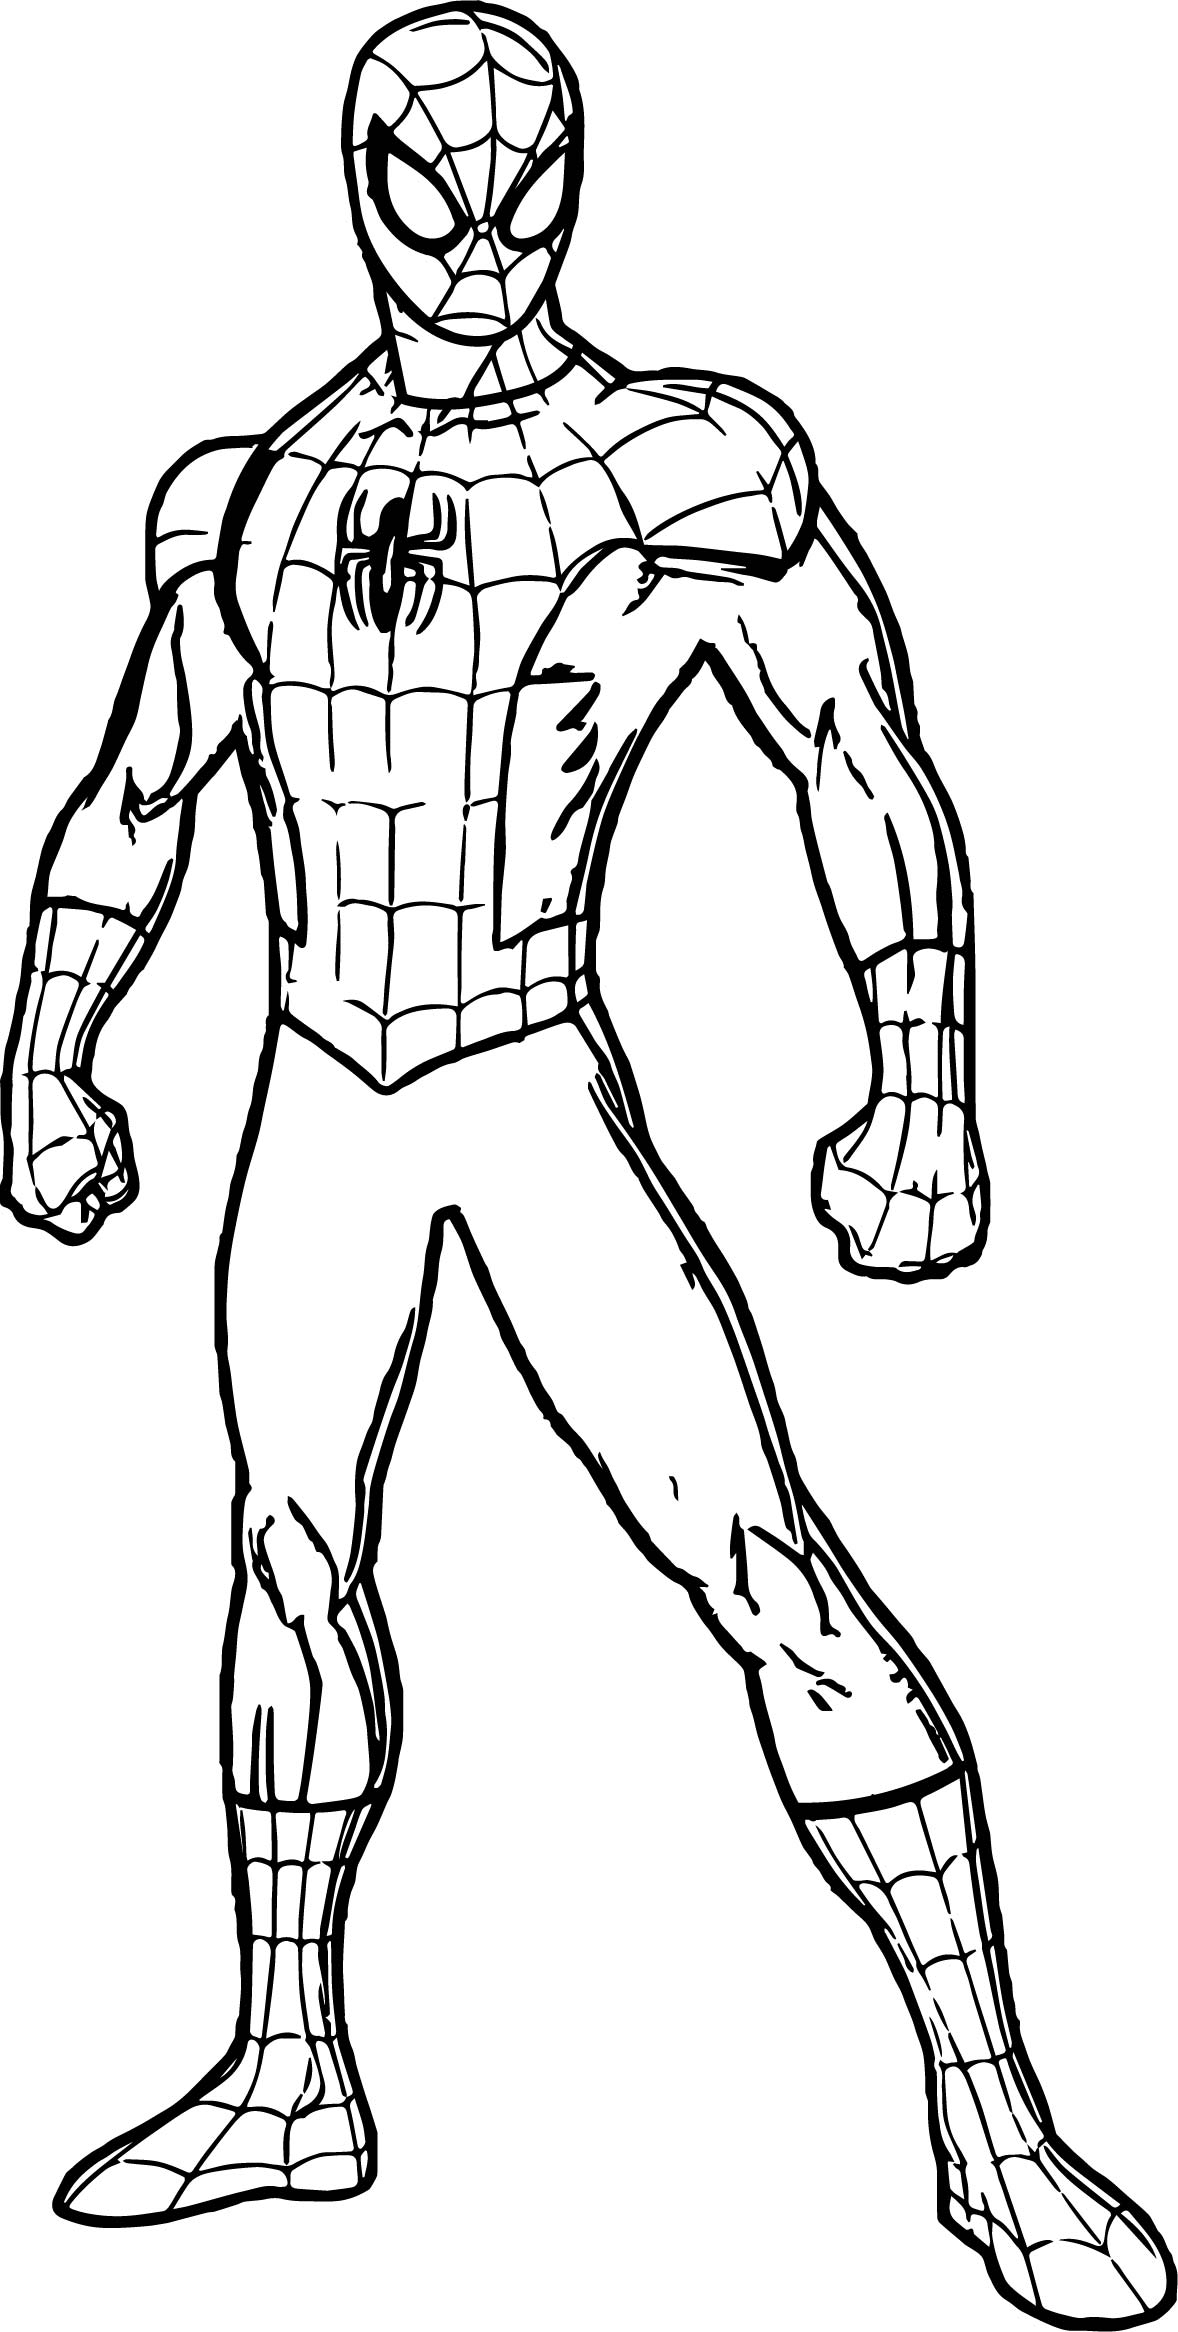 spectacular spiderman coloring pages - photo#45